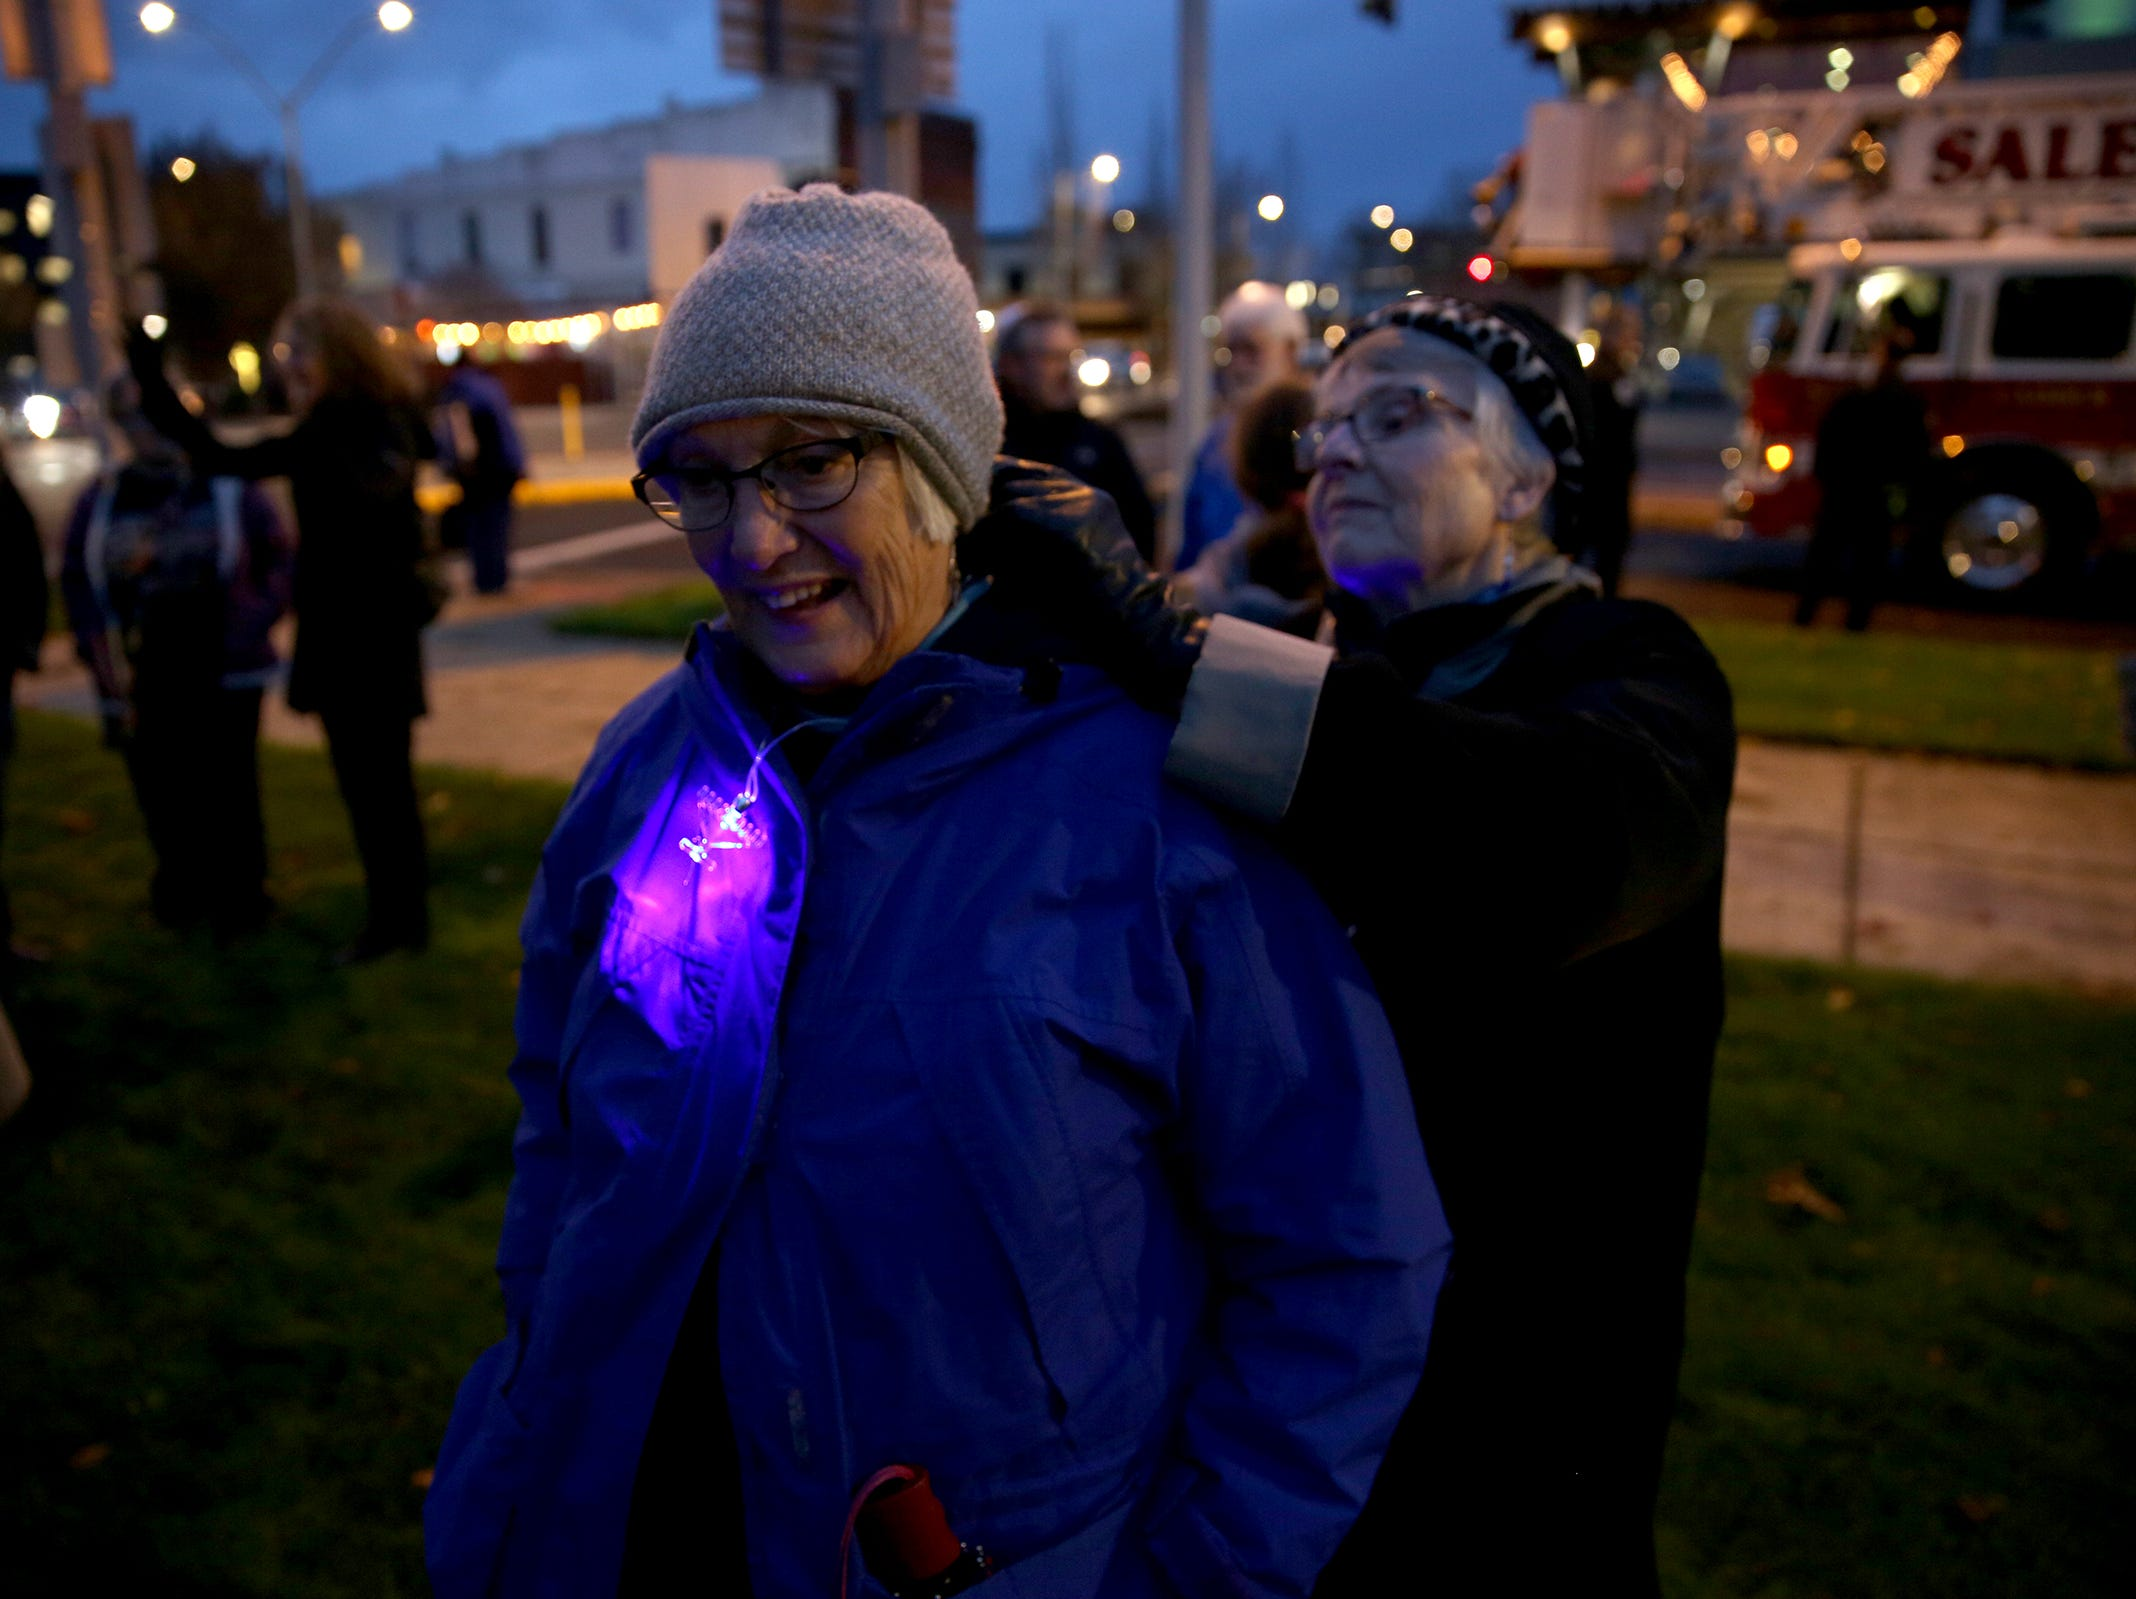 Mary Gabriel helps Yael Ben-Ari put on a light-up menorah necklace during a celebration on the first day of Hanukkah at Mirror Park in downtown Salem on Sunday, Dec. 2, 2018.